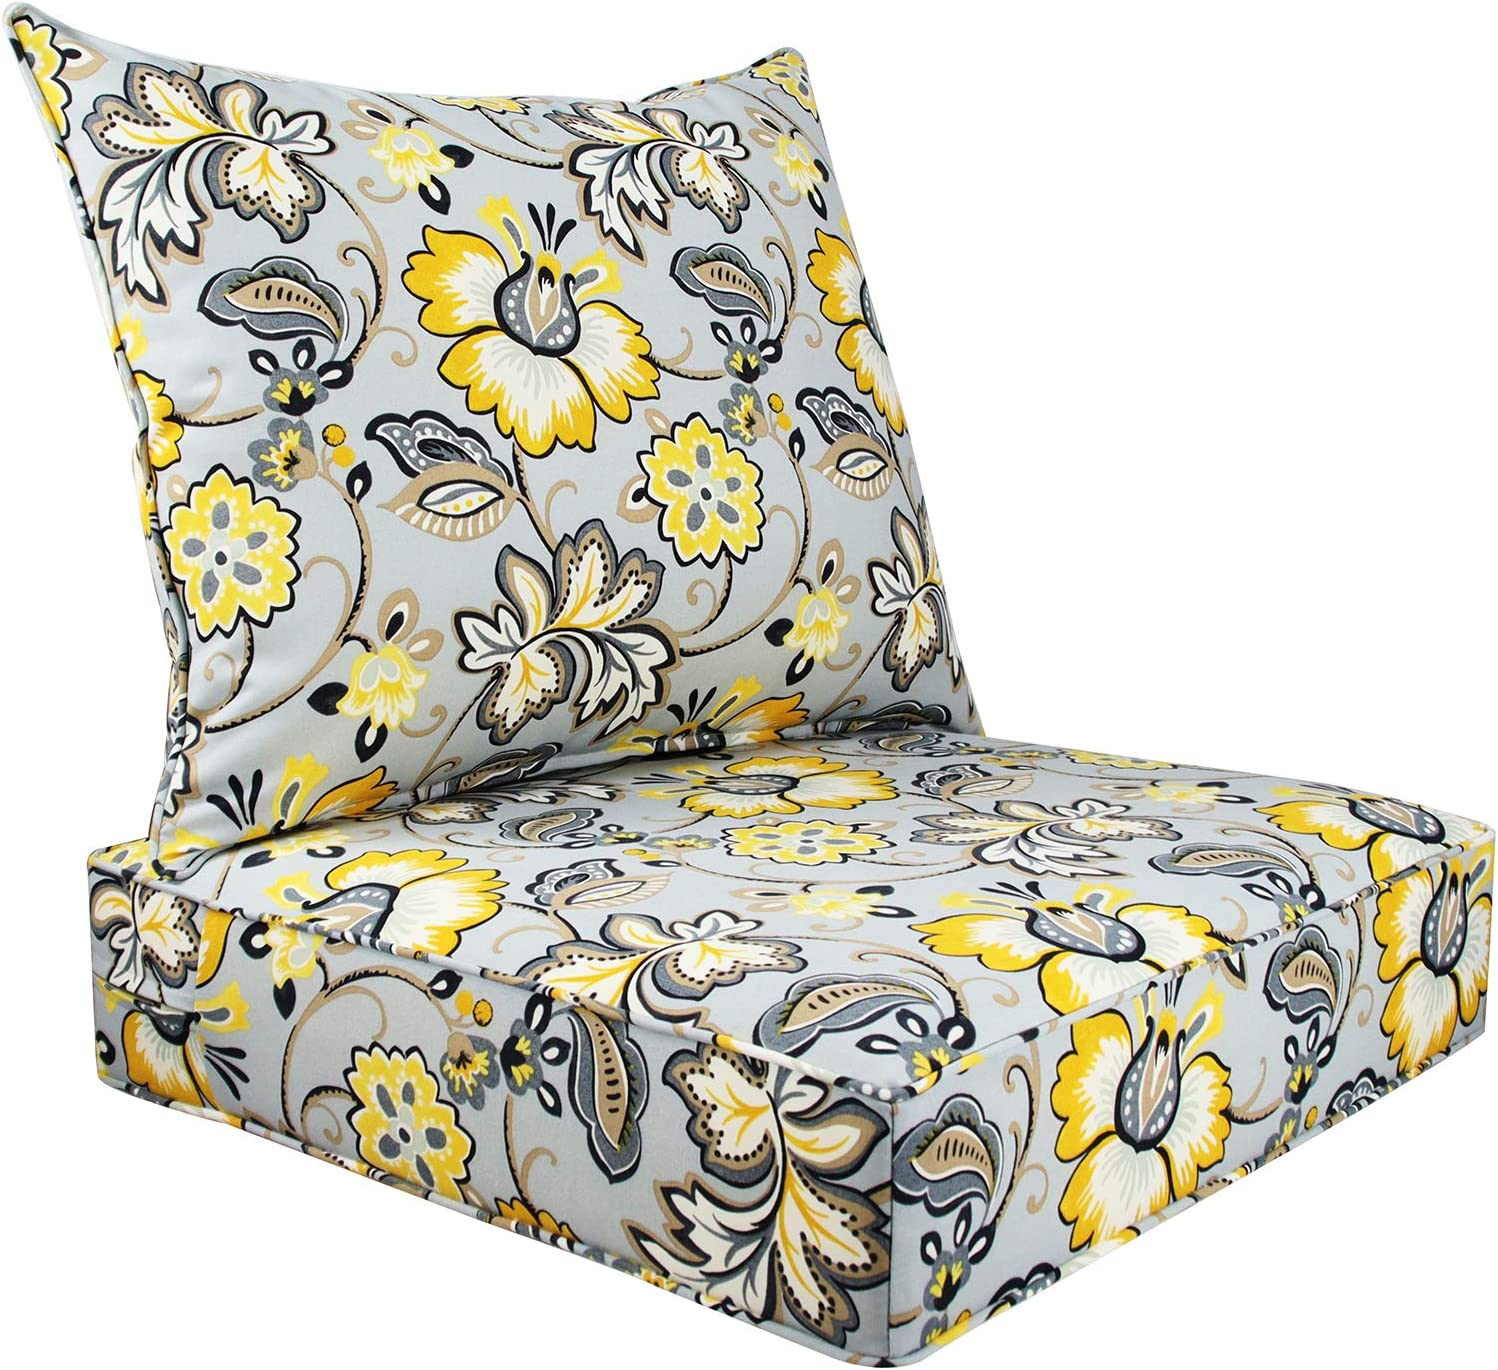 Bossima Indoor/Outdoor Deep Seat Chair Cushion Set, Spring/Summer Seasonal Replacement Cushions (Flower Prints Grey)